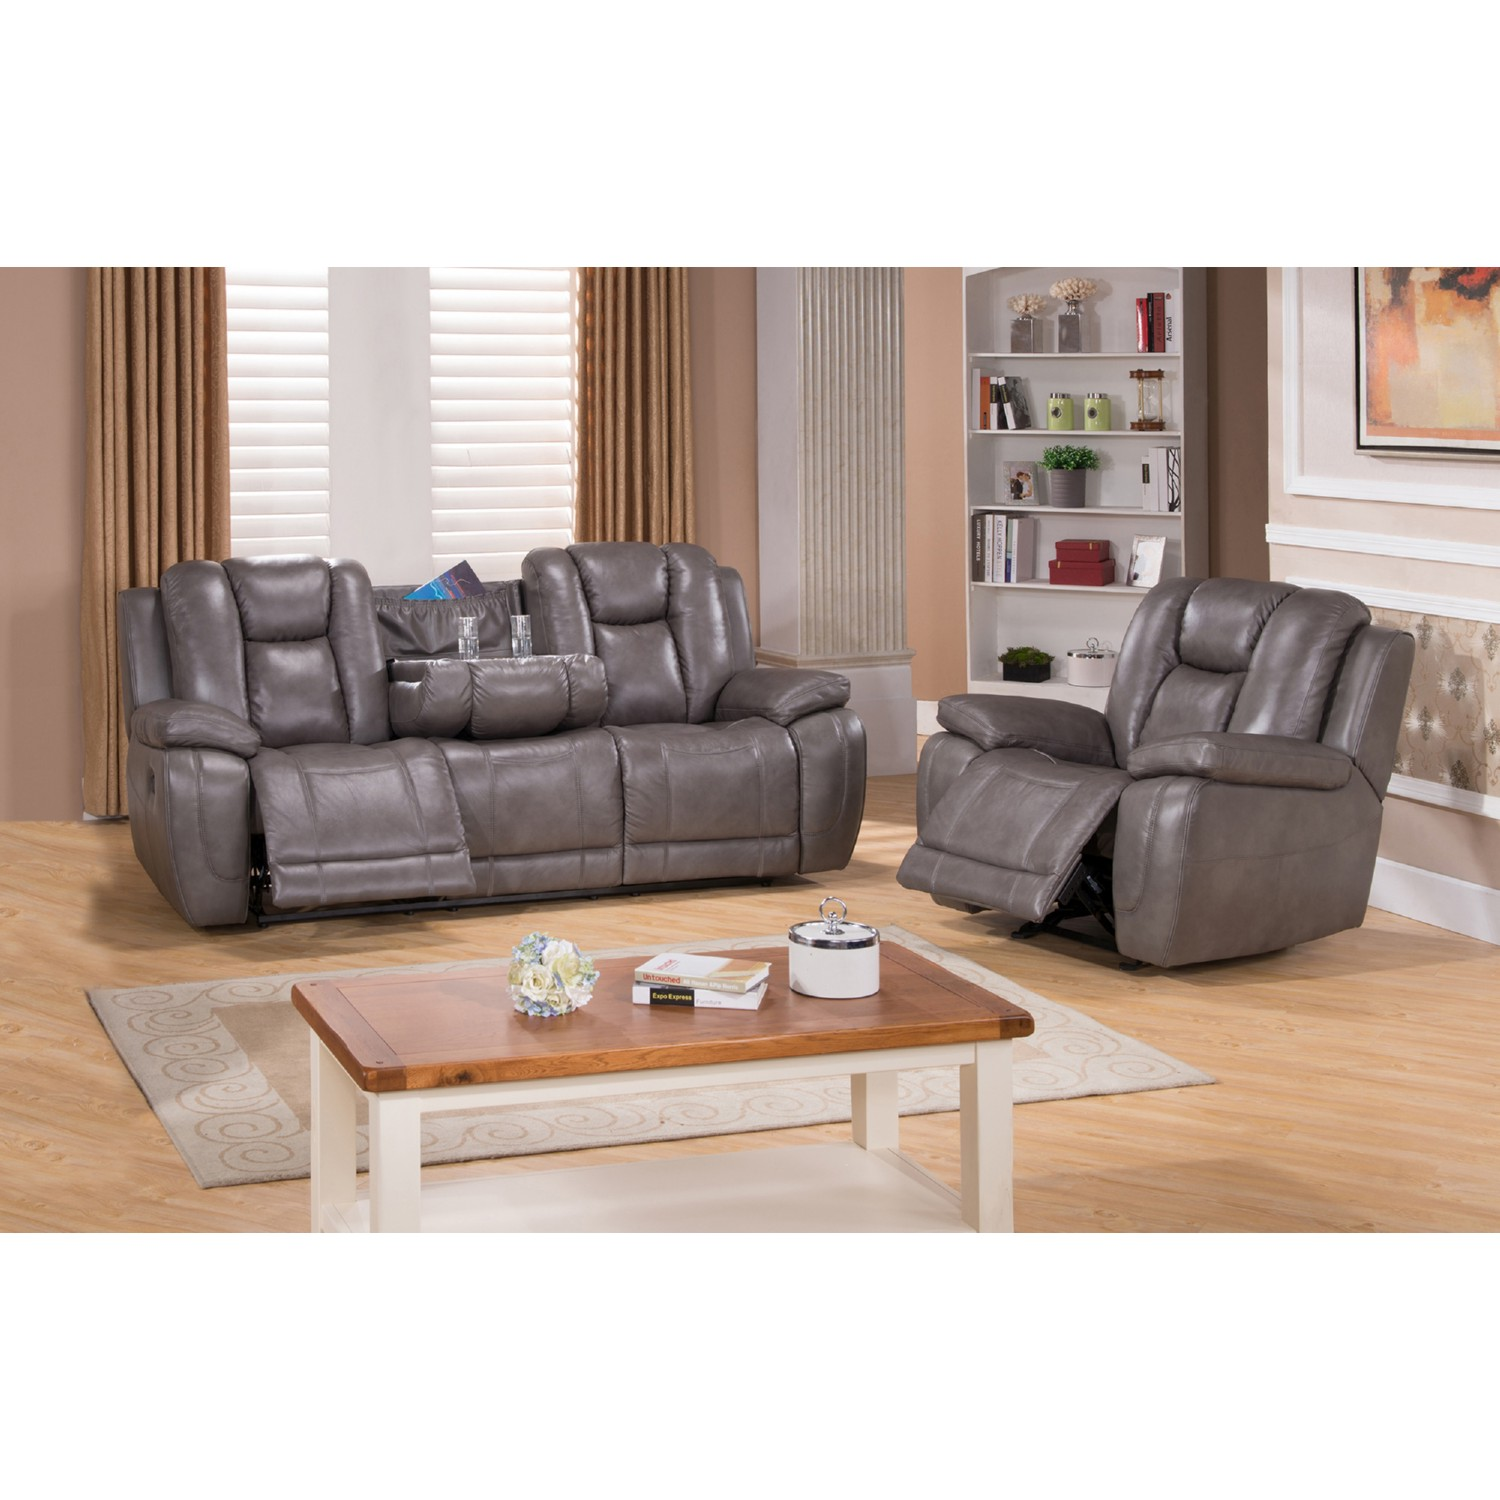 Amax leather austinscc austin 100 leather reclining sofa w drop austin 100 leather reclining sofa w drop down table recliner in smoke grey geotapseo Choice Image